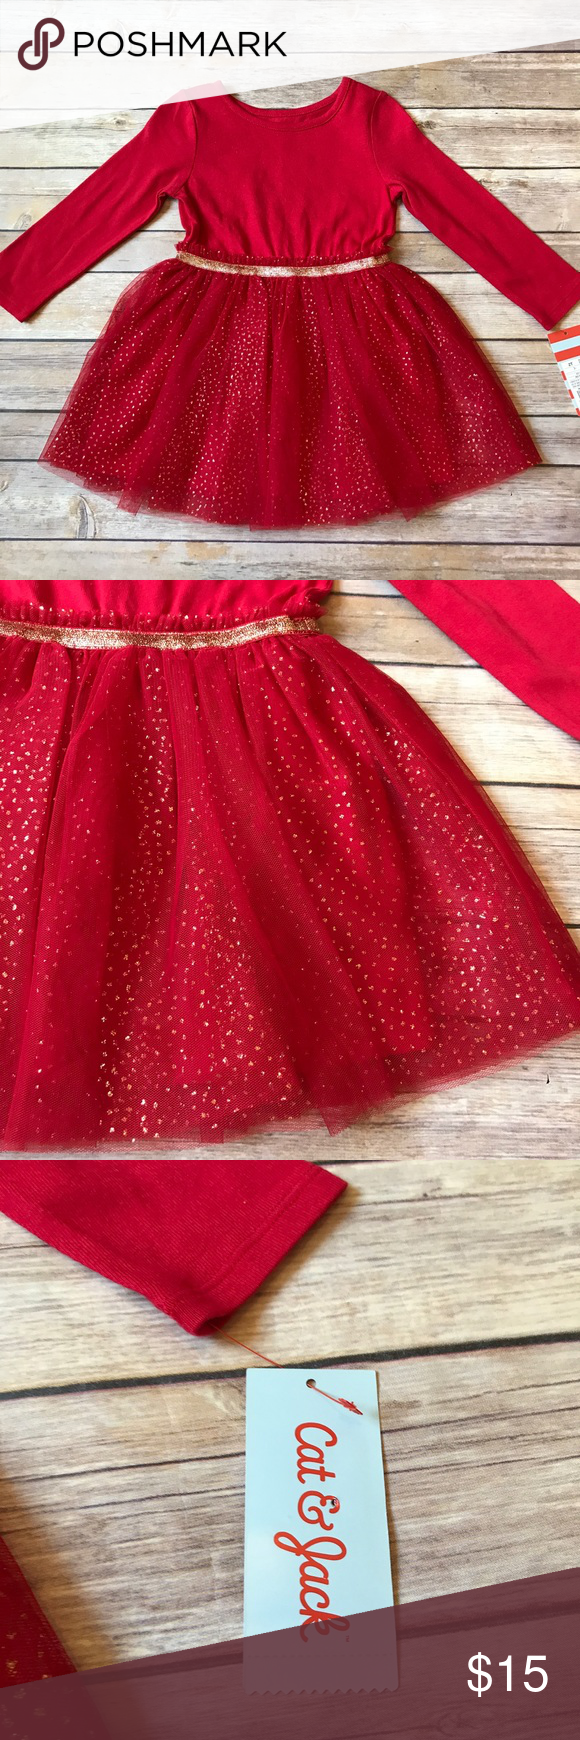 1eb429020e NWT Cat & Jack Brand new with tags attached. Size 2T Cat & Jack red and gold  tutu dress. Long sleeve cotton top with red and gold tutu skirt. Sparkly  gold ...